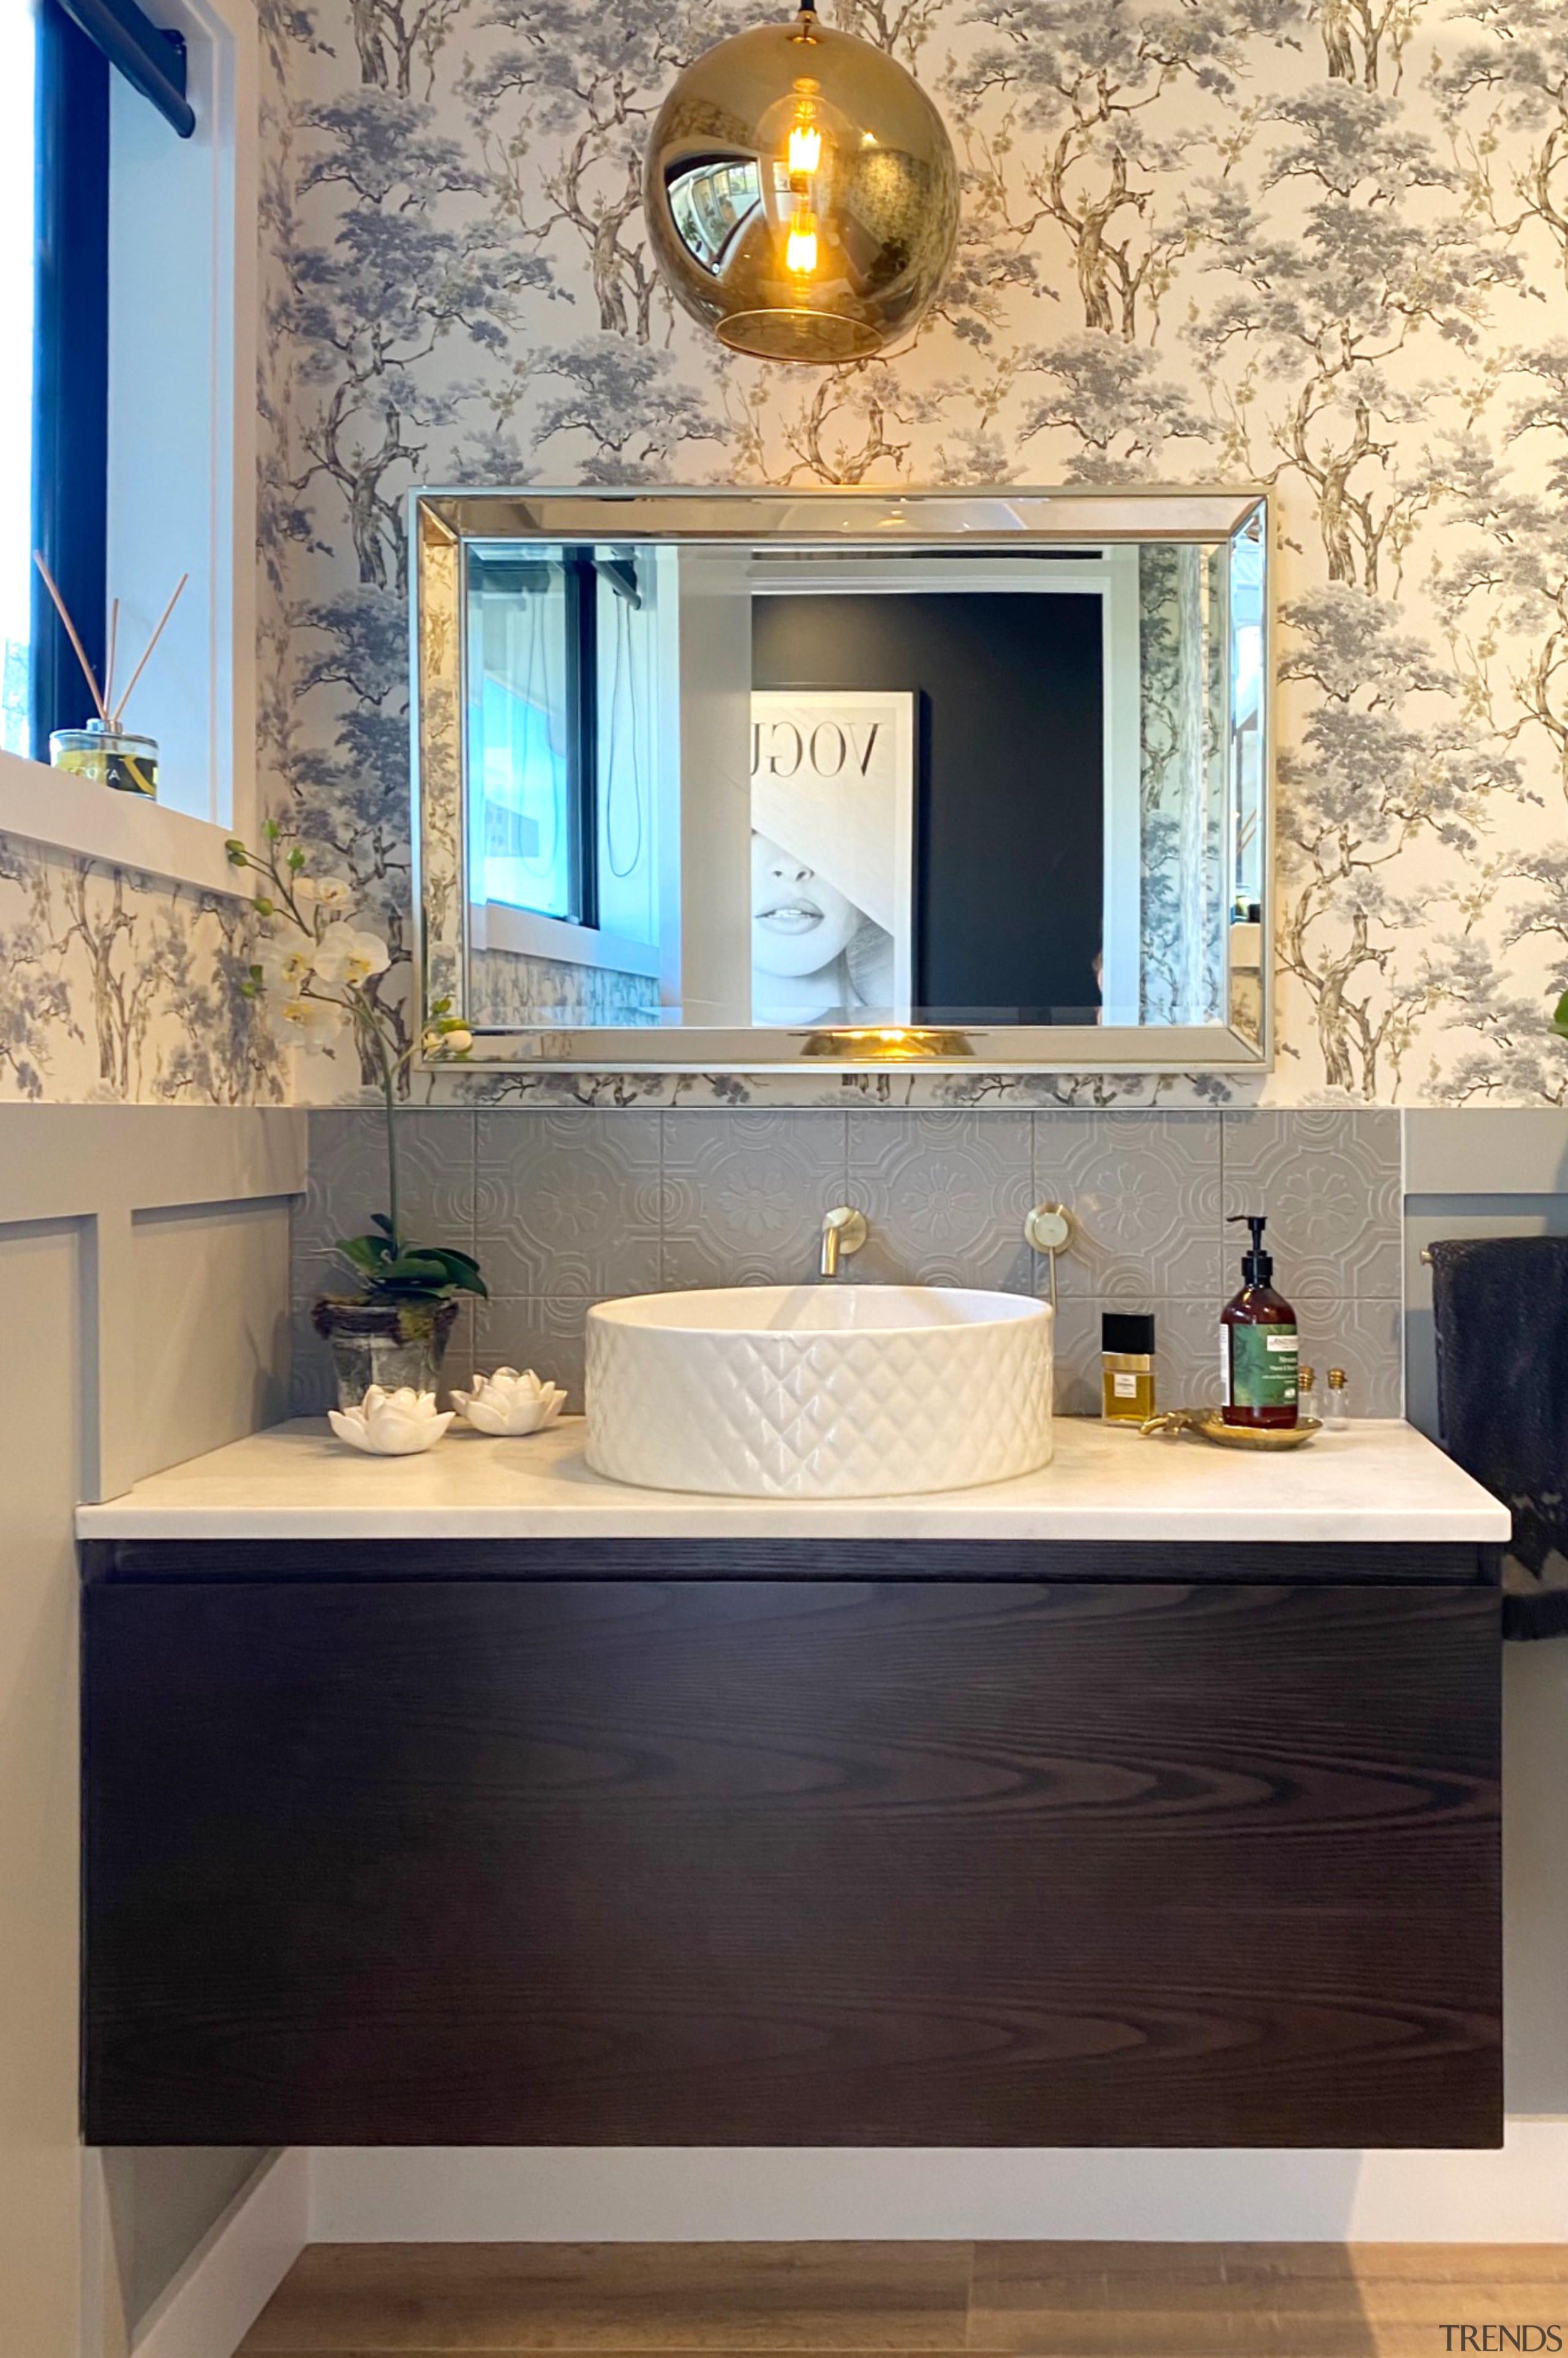 This generous powder room was designed to make